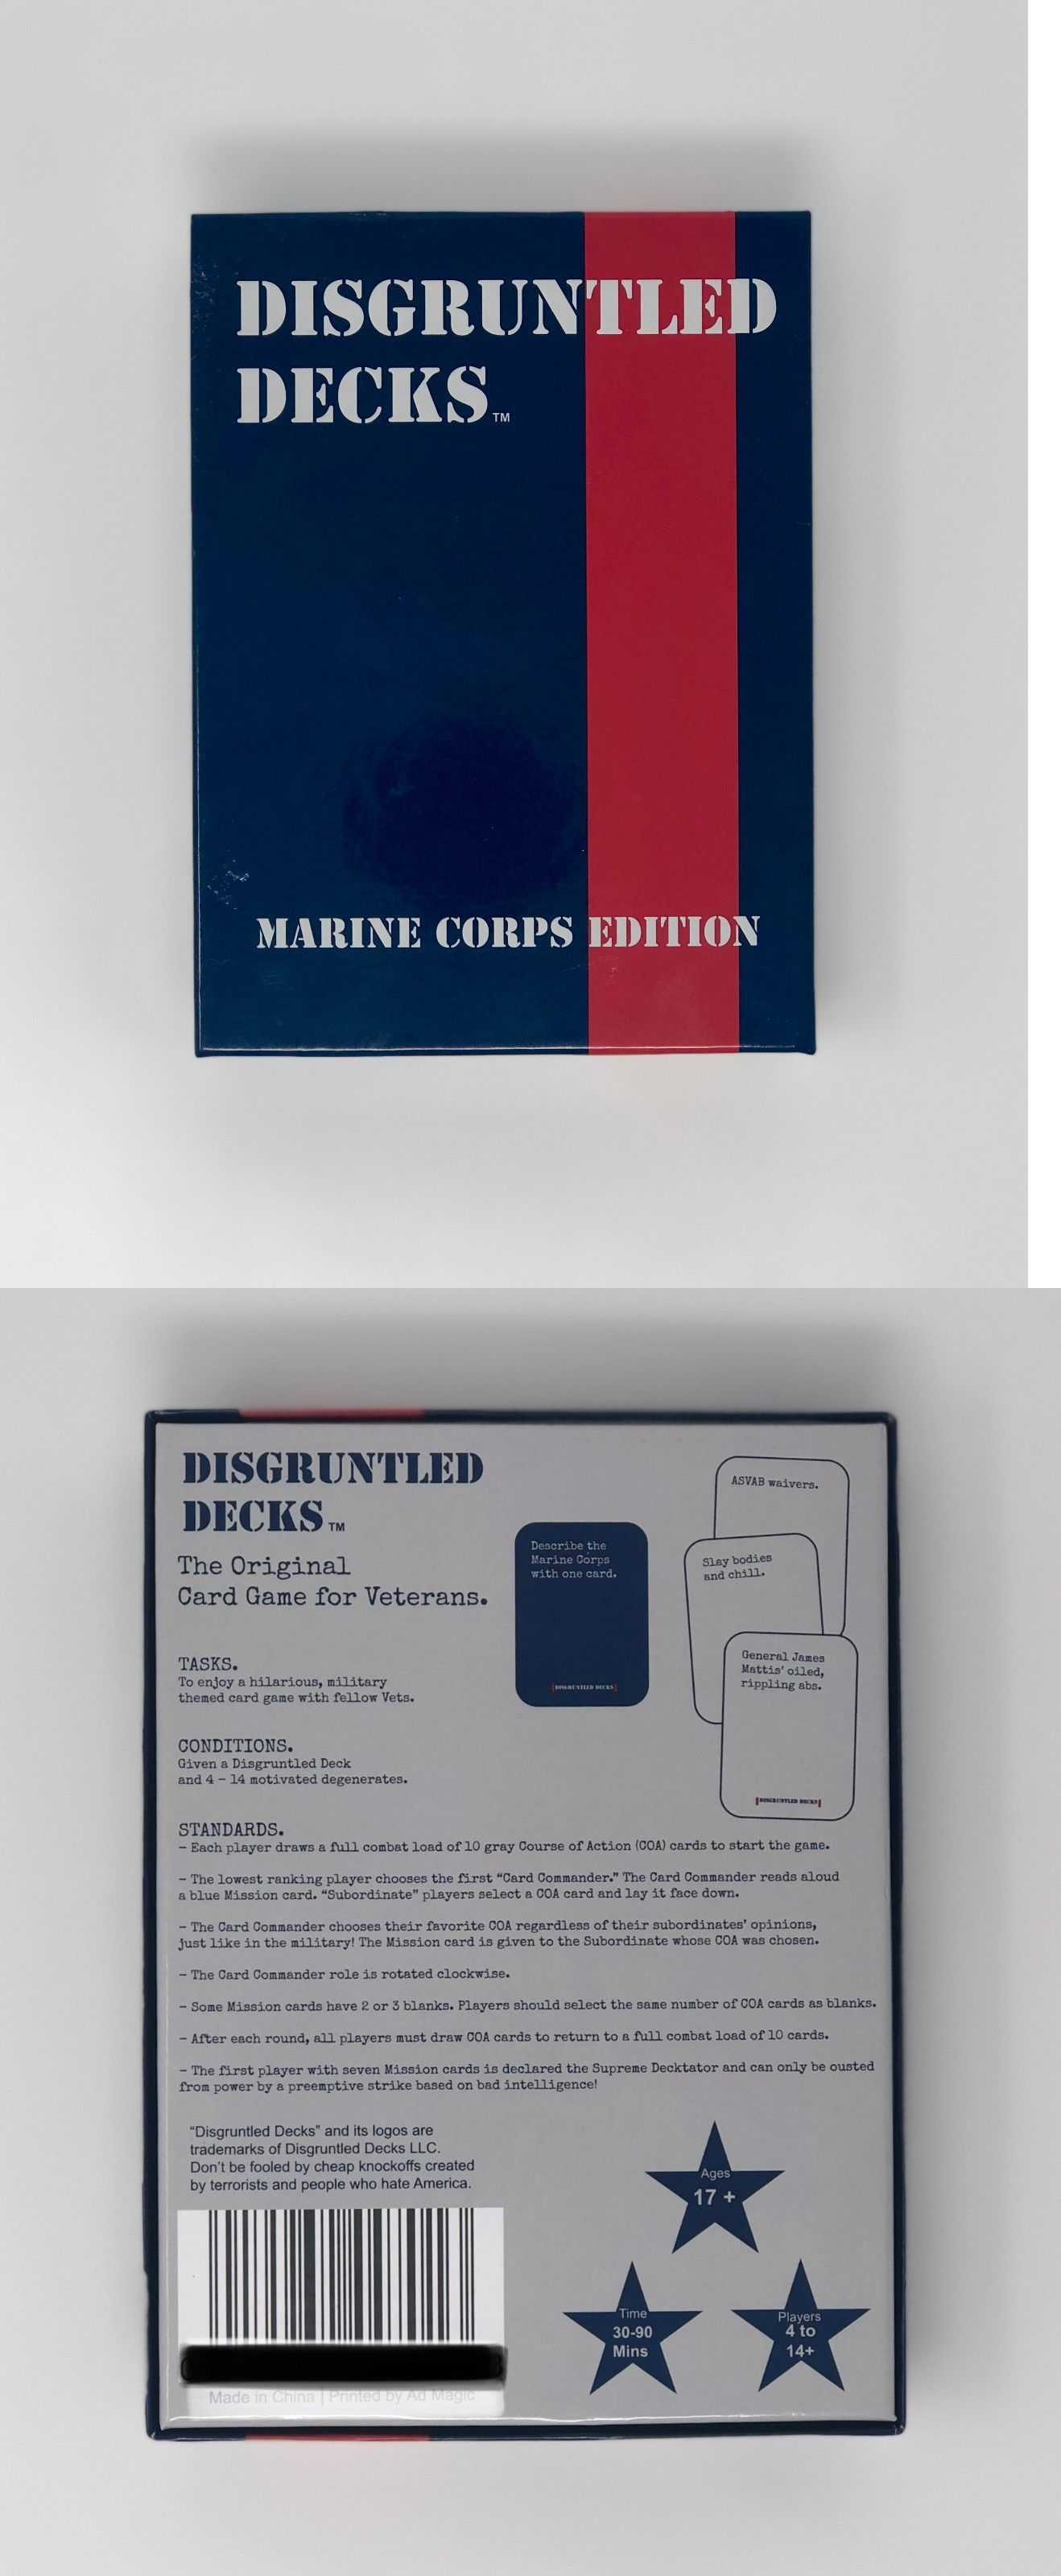 Other CCG Items 2535: Disgruntled Decks - Military Party Card Game For  Veterans - Usmc Marine Corps -> BUY IT NOW ONLY: $24.99 on #eBay #other  #items ...